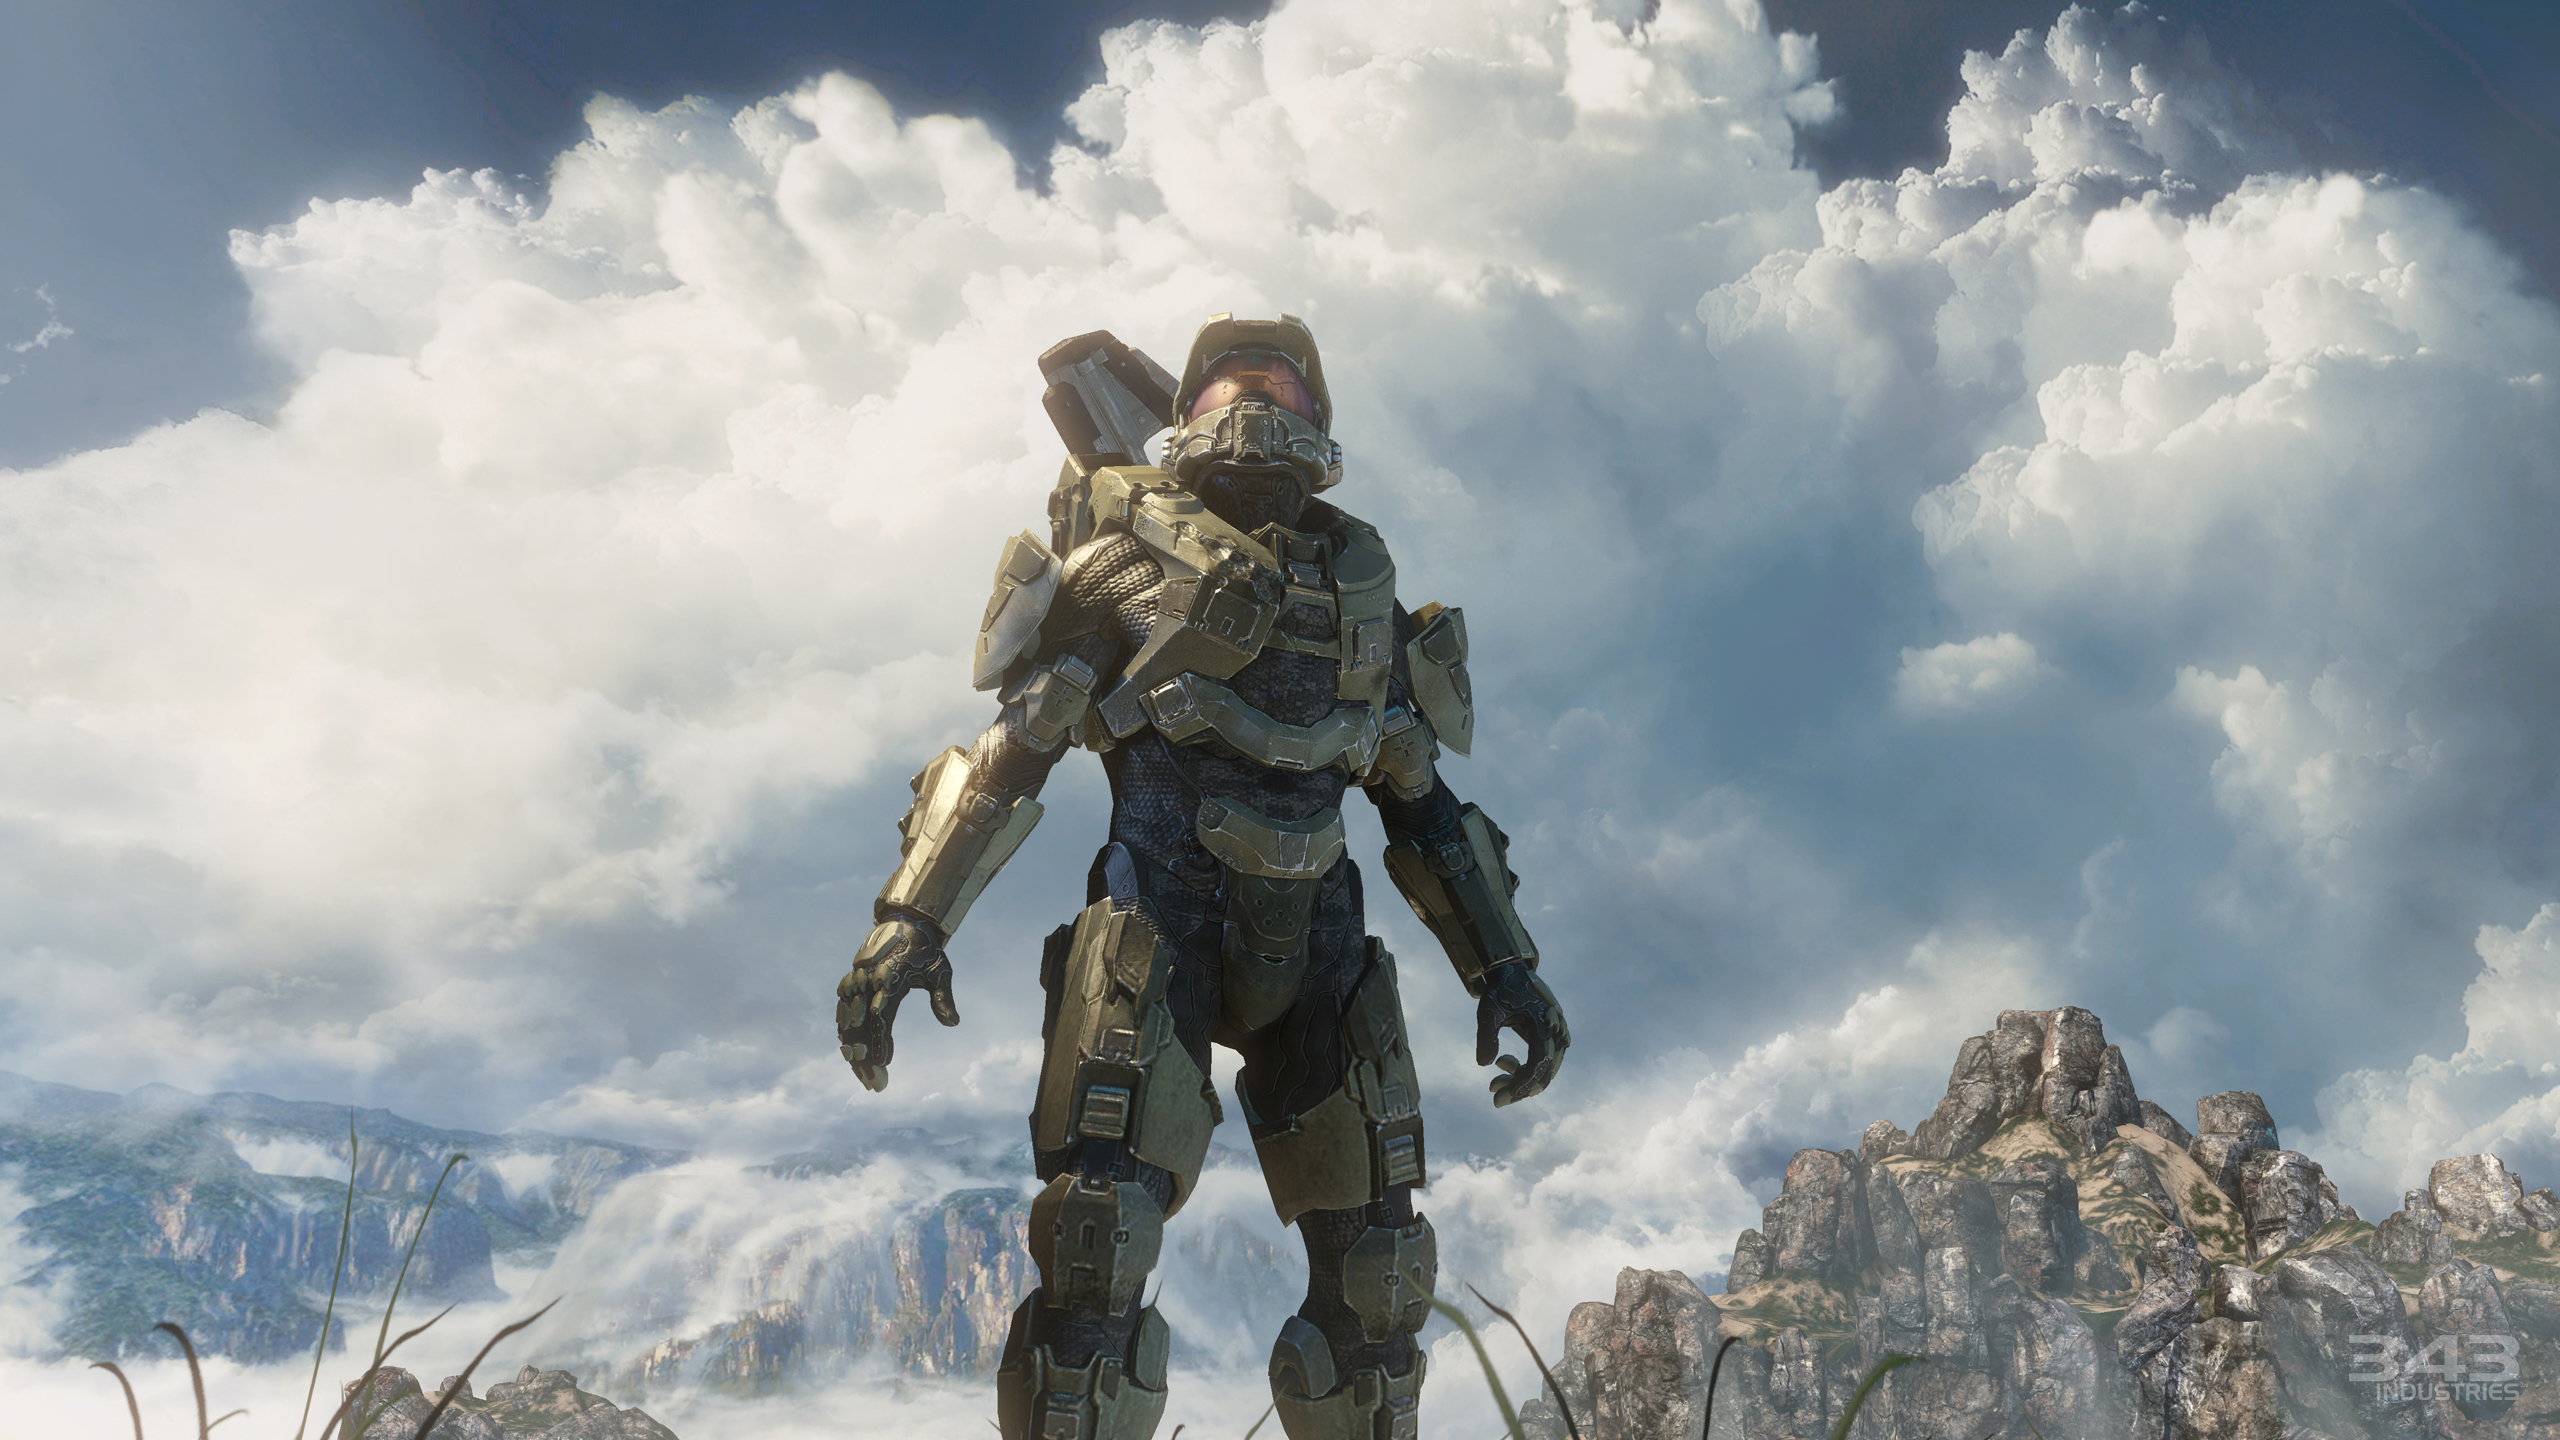 15 Halo 4 HD Wallpapers Background Images 2560x1440